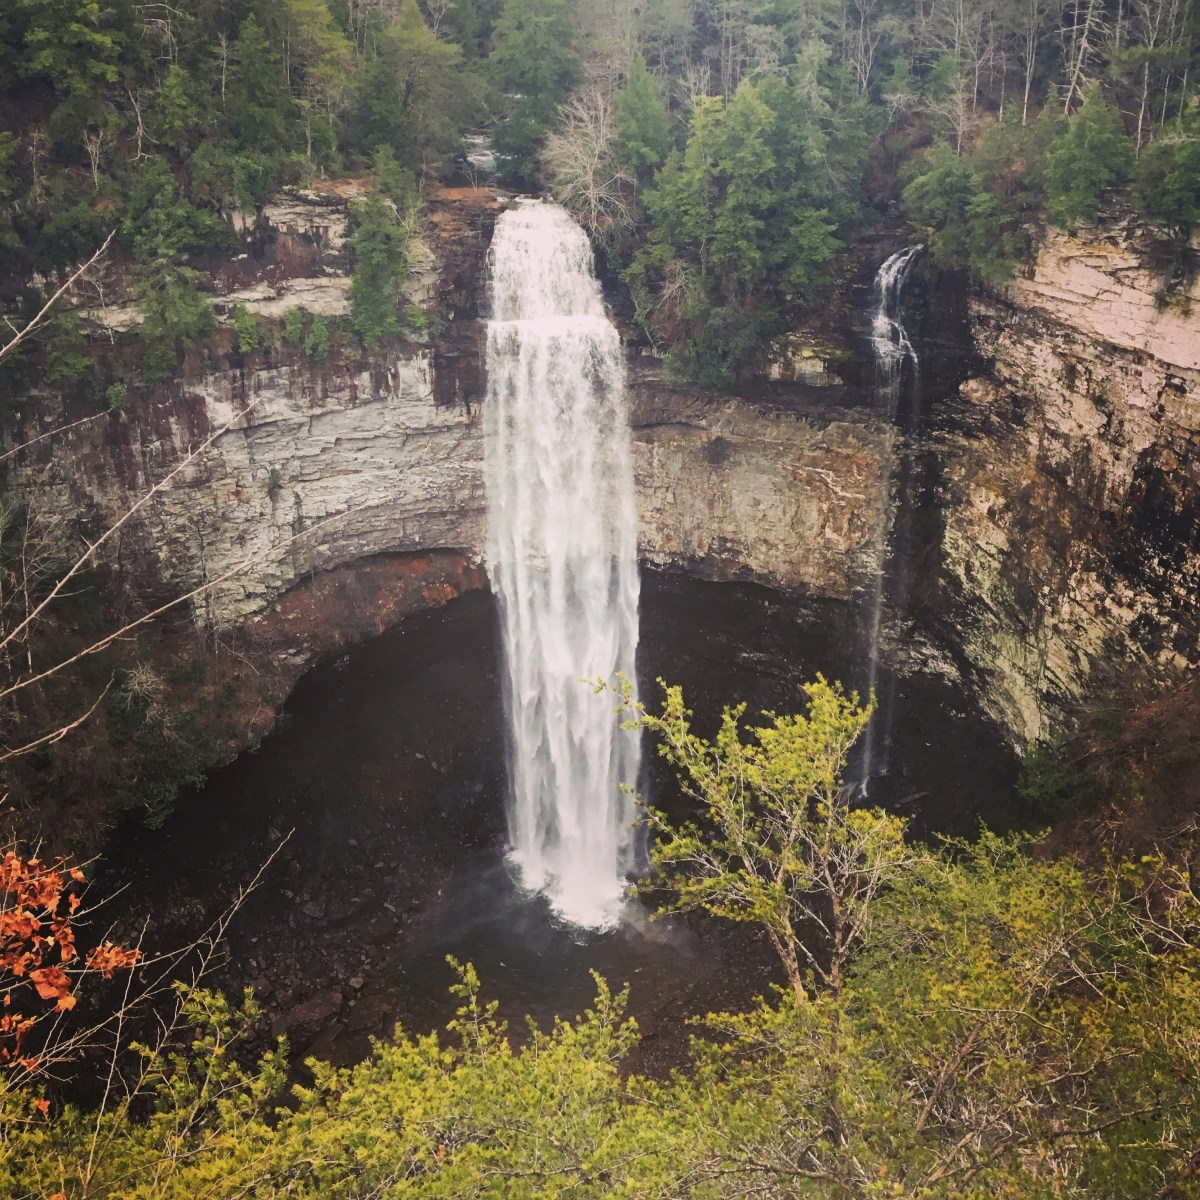 Hiking On A Date | Fall Creek Falls